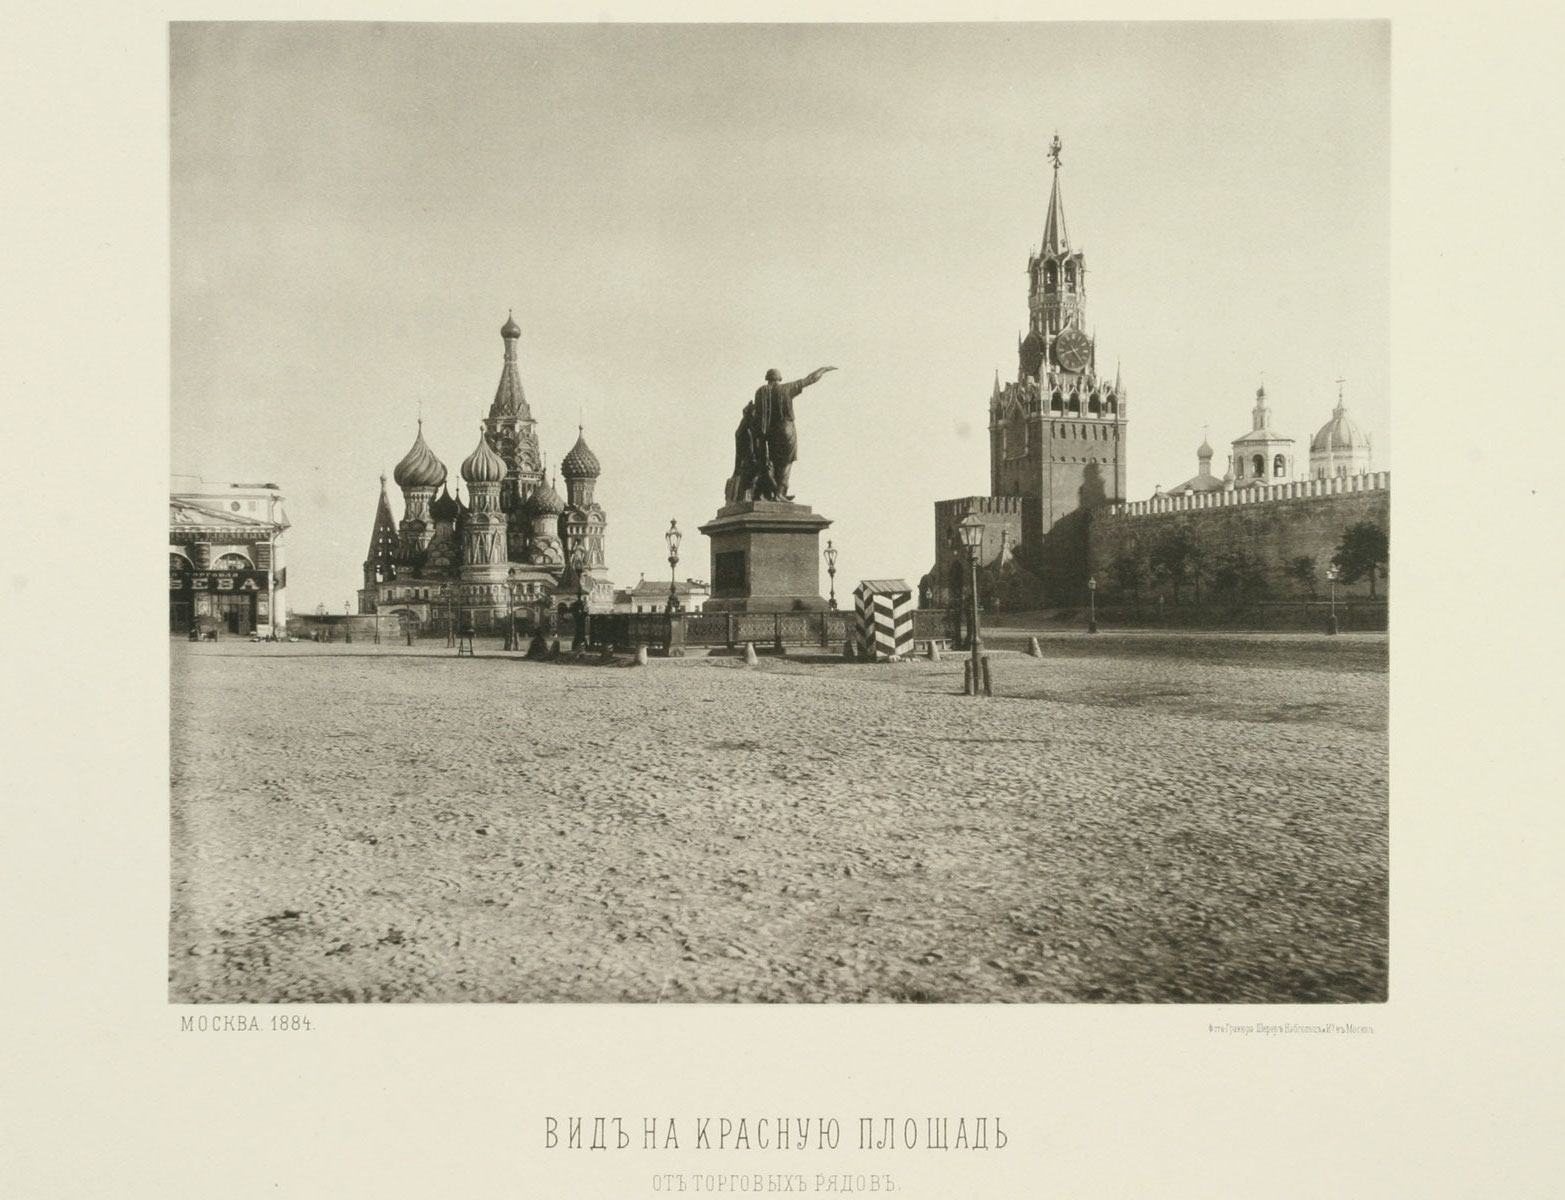 Moscow 1883-1884 (21)